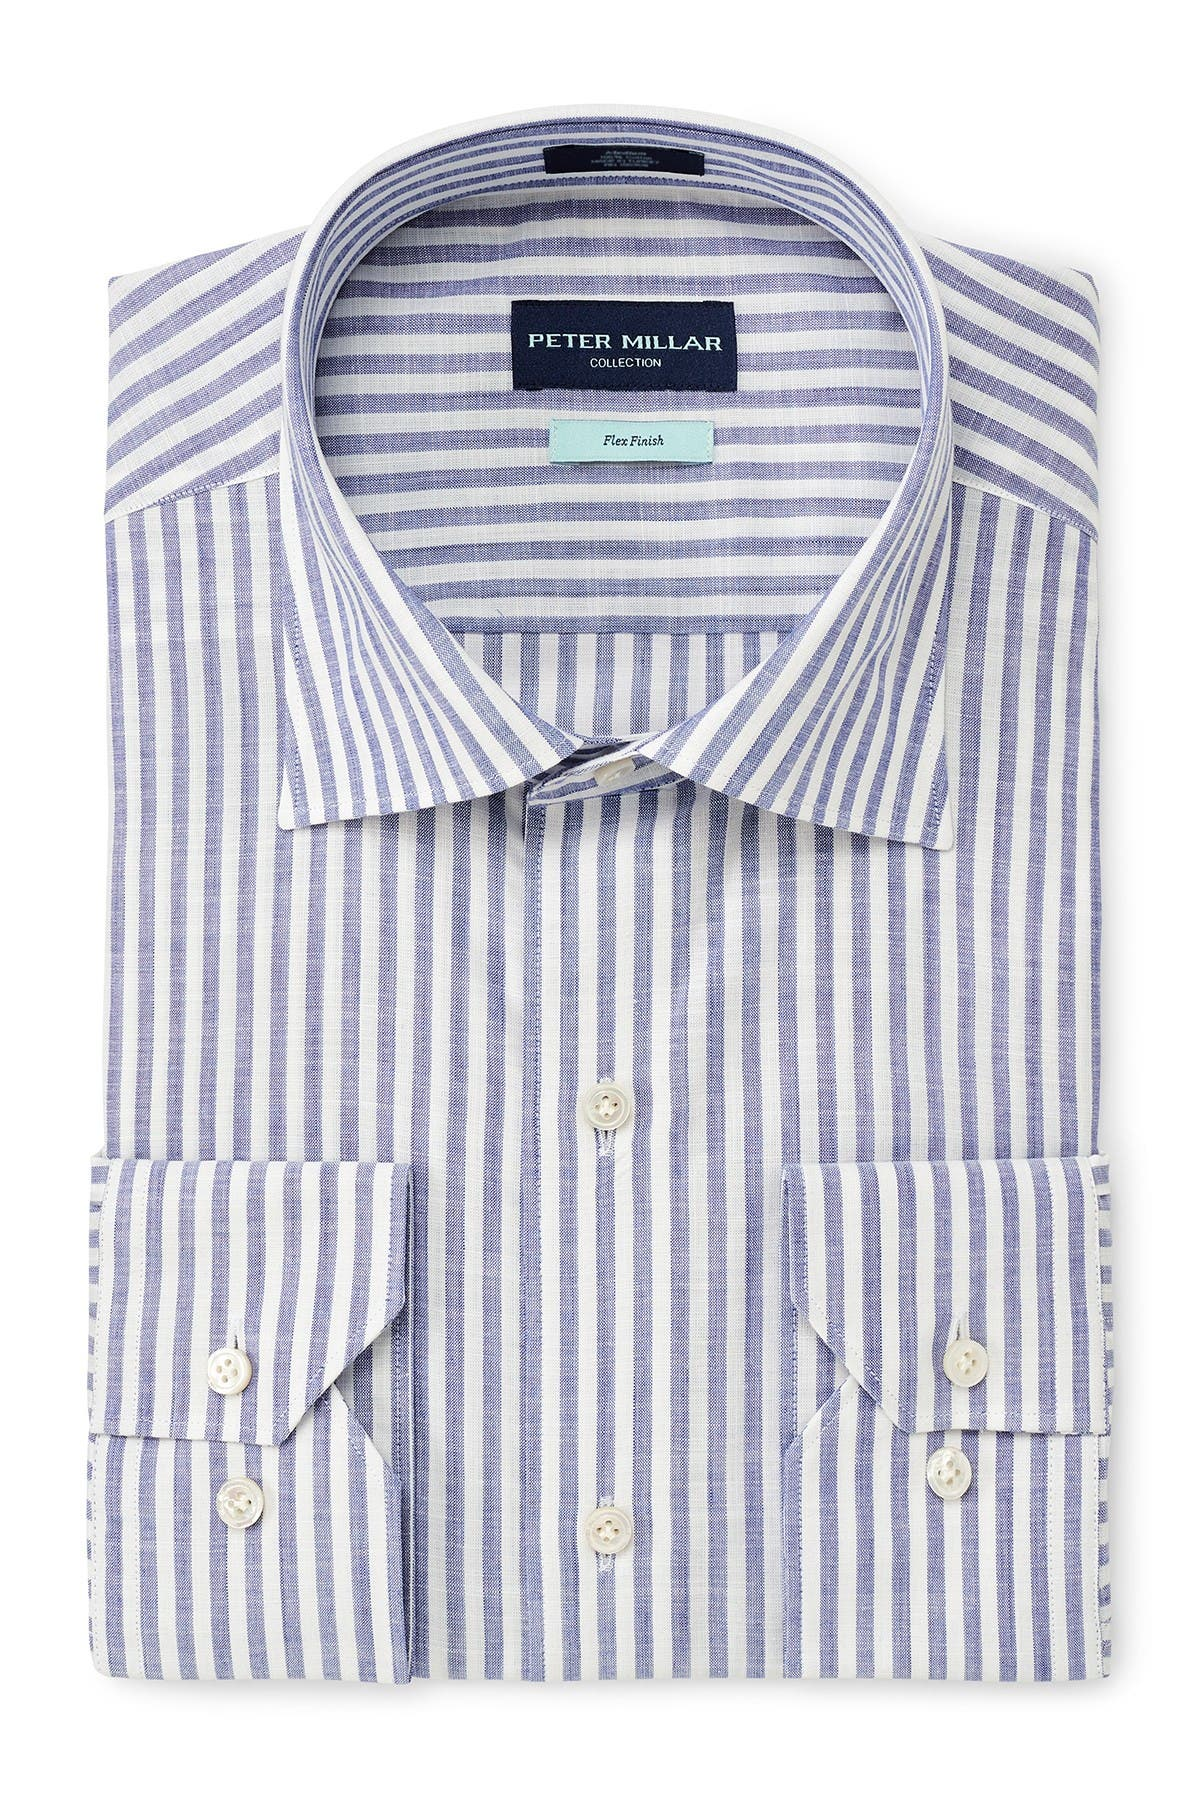 Image of Peter Millar Summer Chambray Stripe Shirt